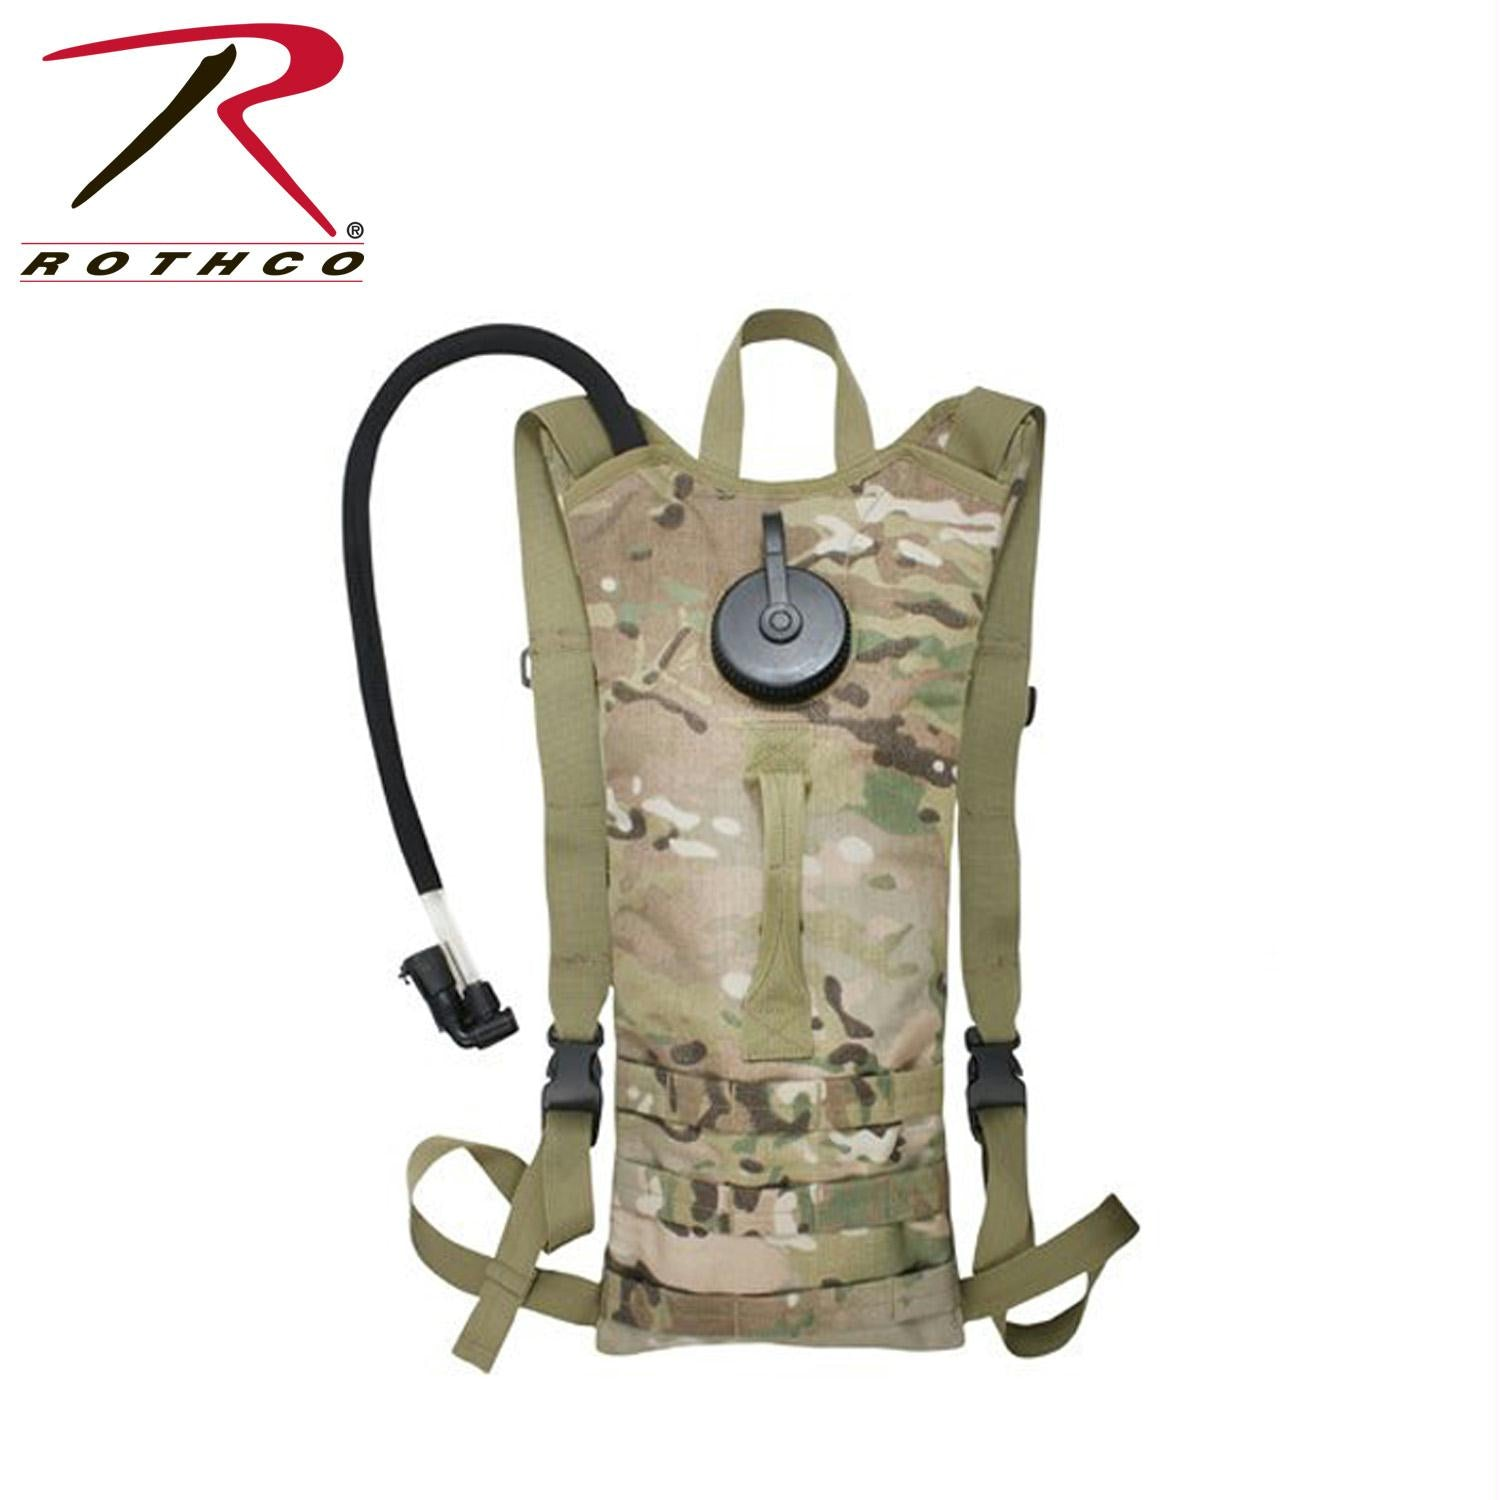 Rothco MOLLE 3 Liter Backstrap Hydration System - MultiCam